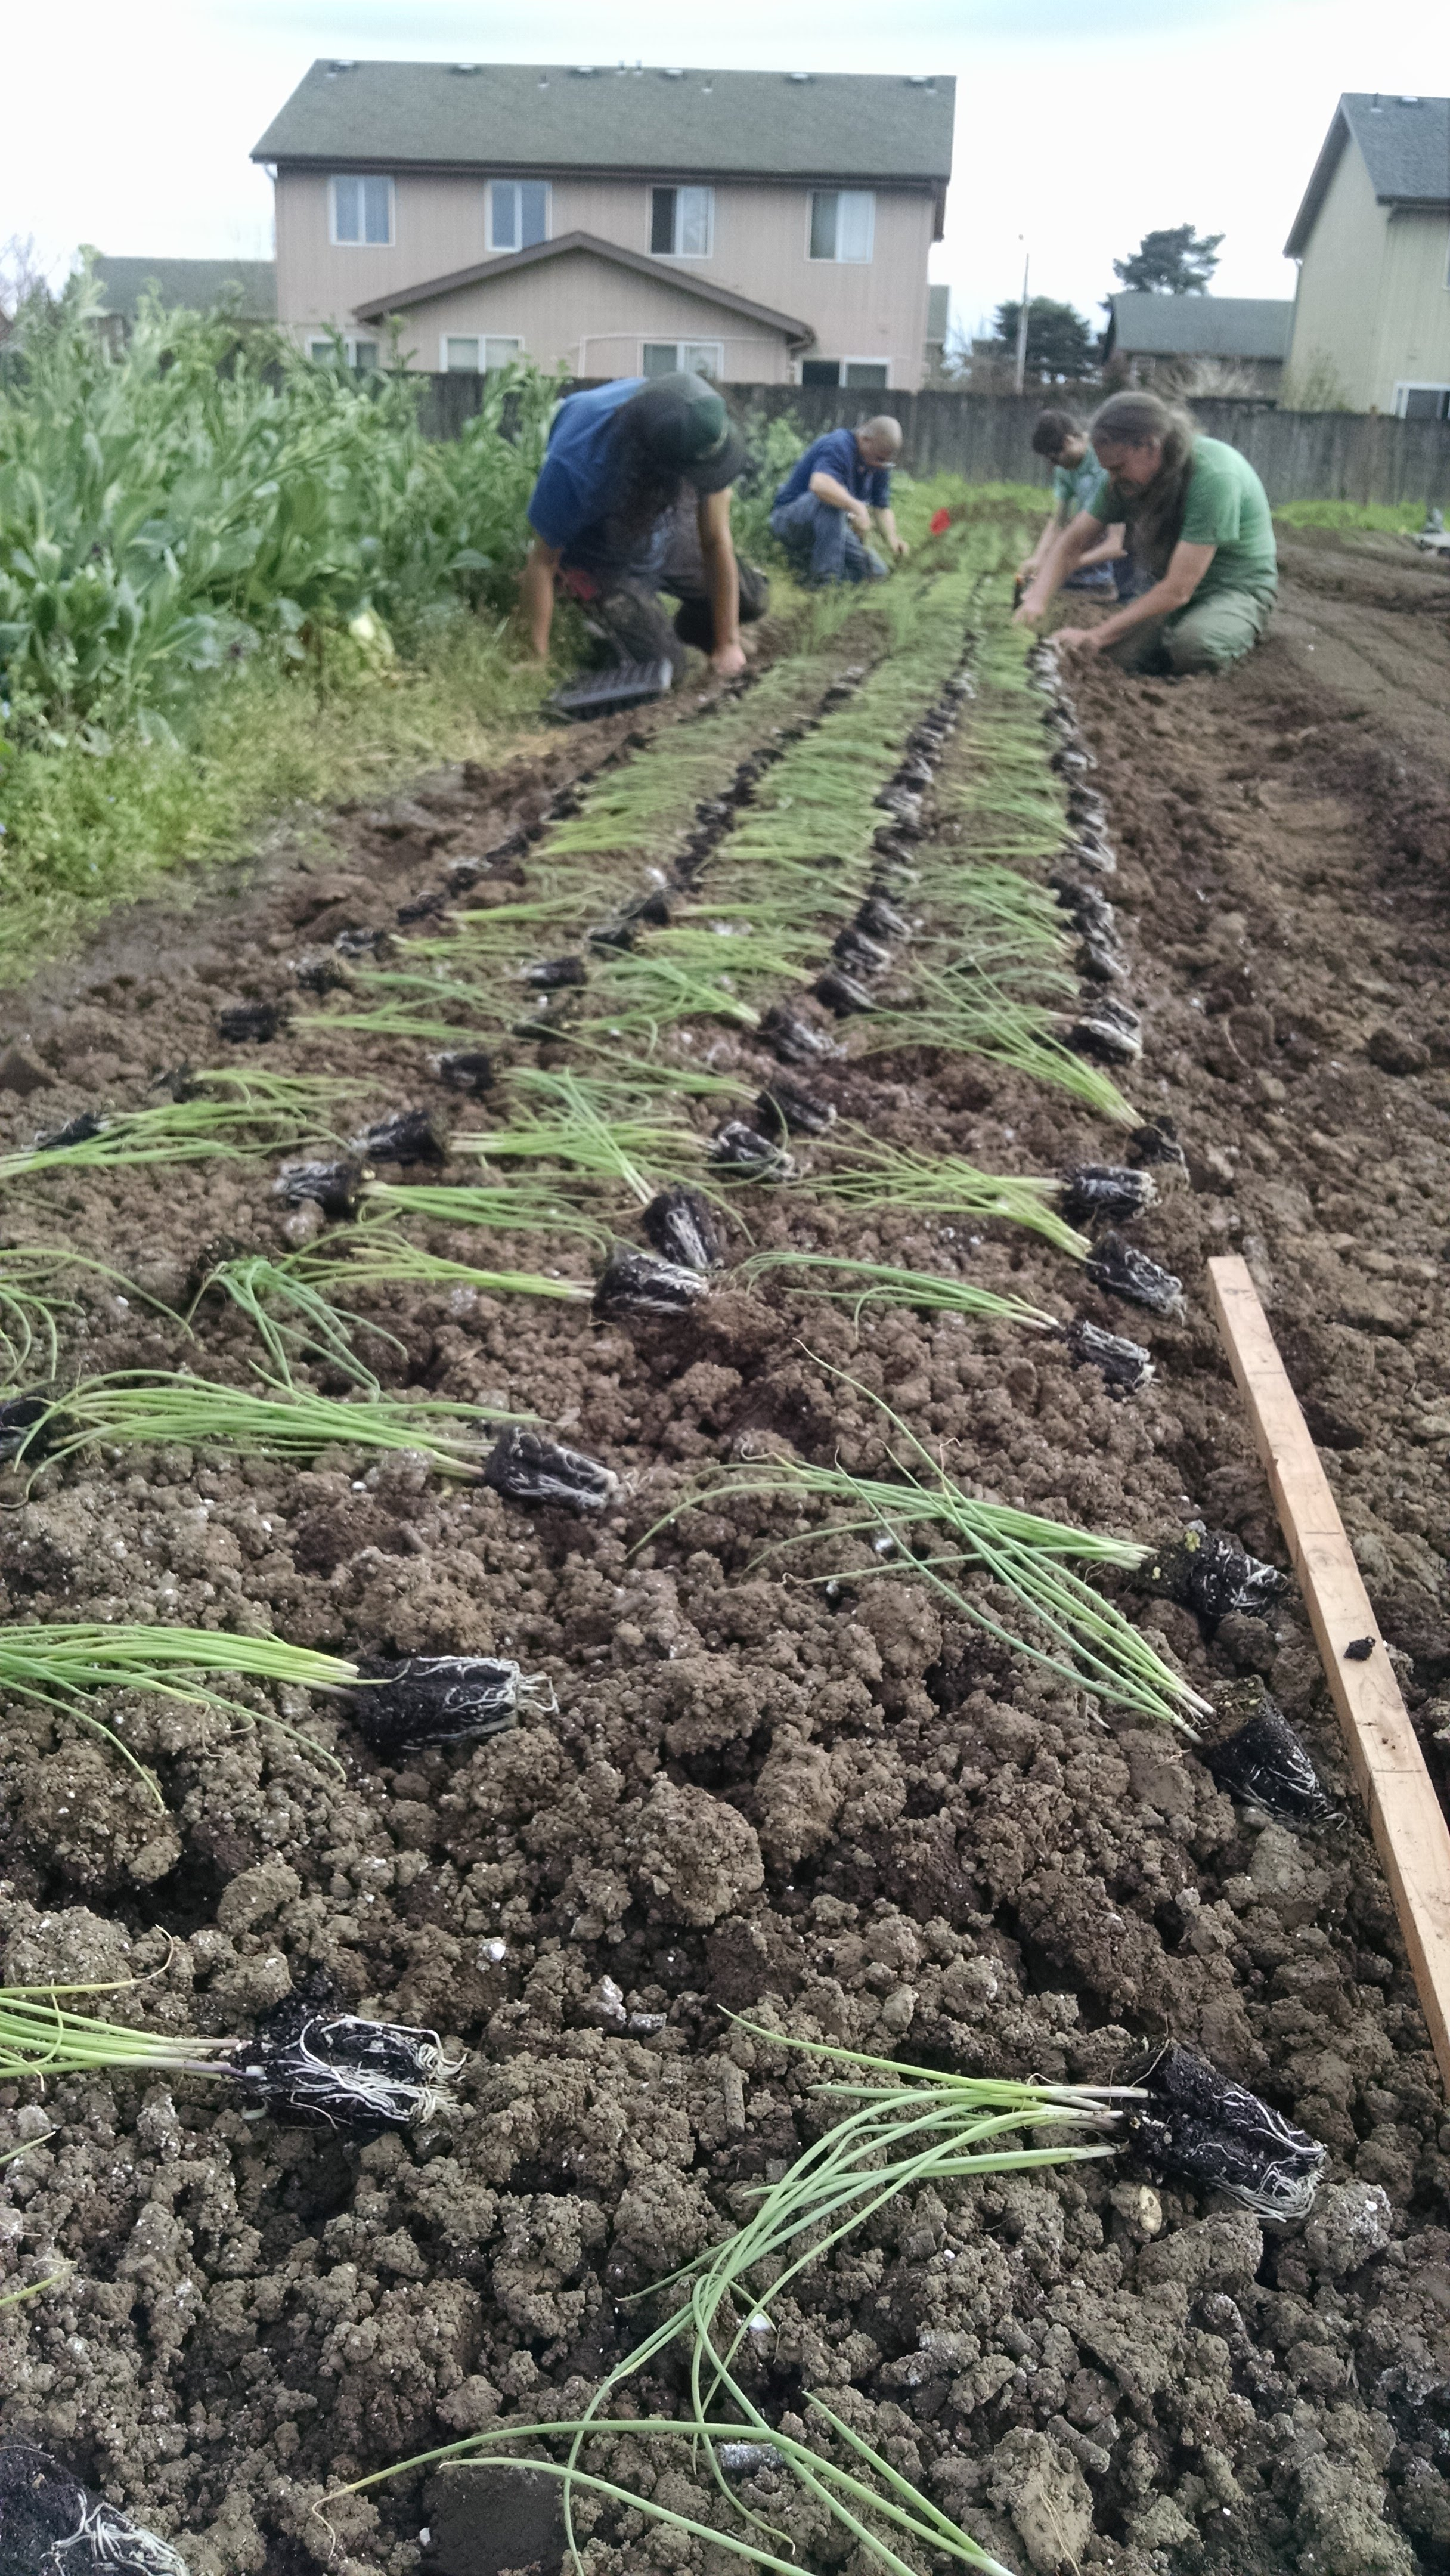 Michael and volunteers transplanting green onions